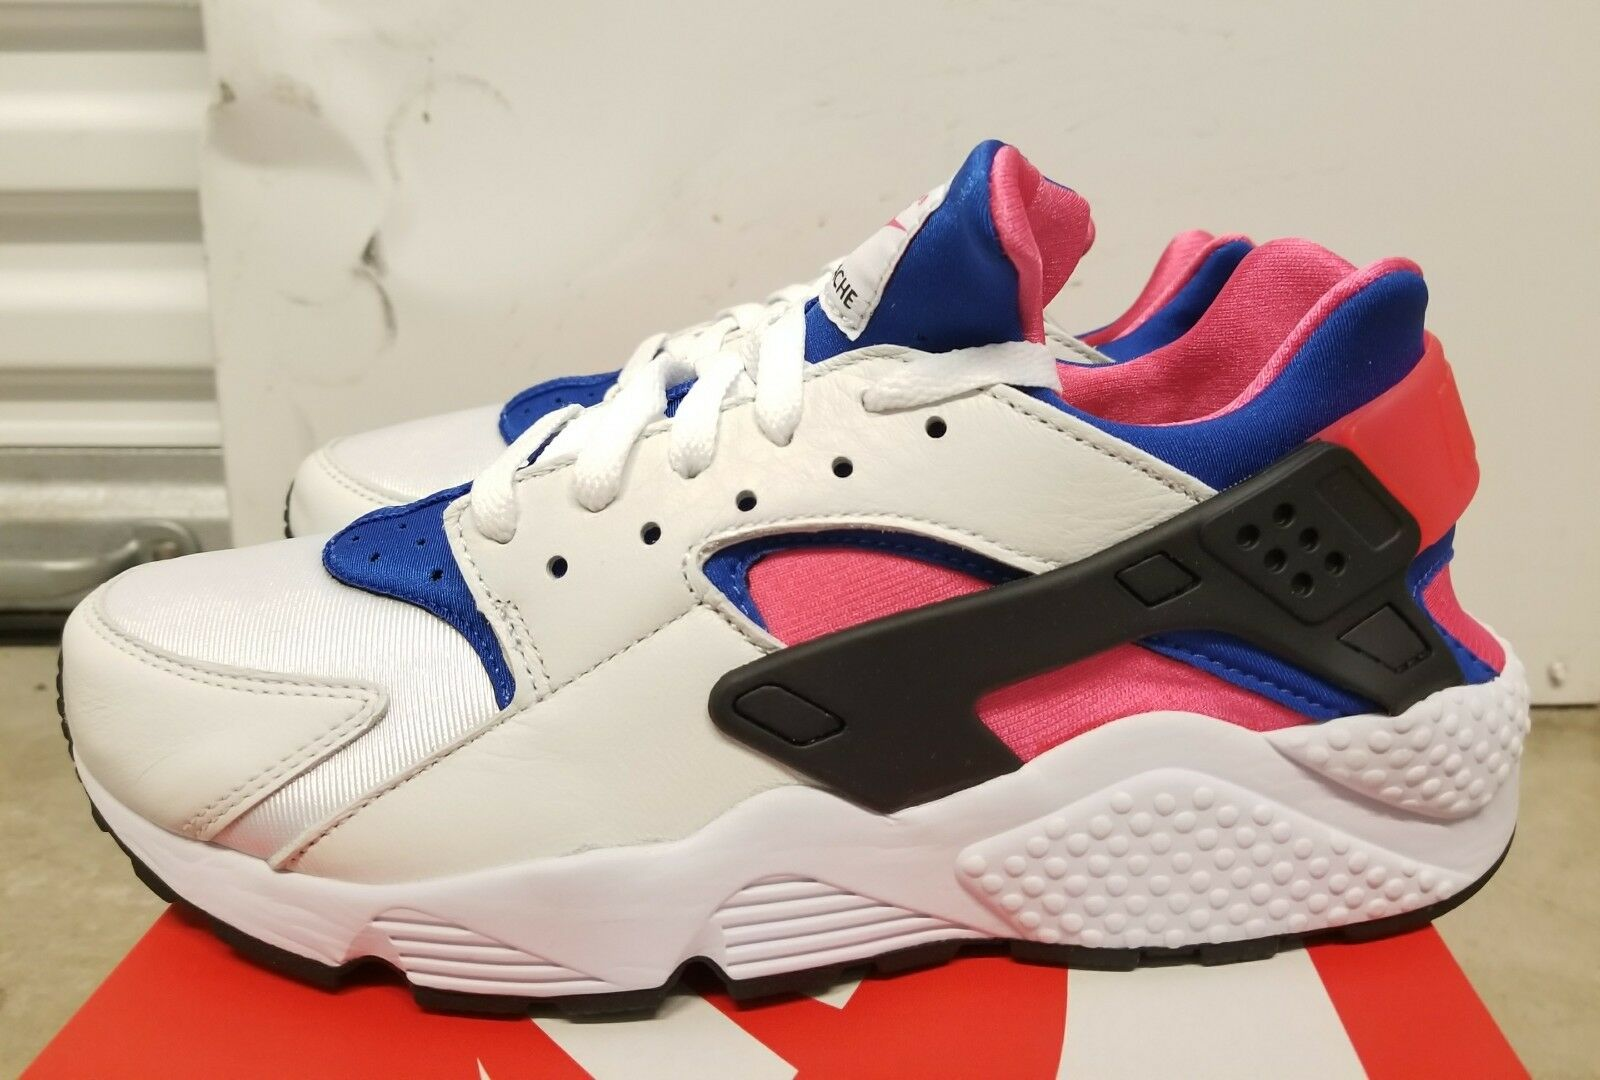 Nike air huarache run '91 og qs white white qs royal ah8049-100 dimensioni 9.5 ds con ricevuta 669169